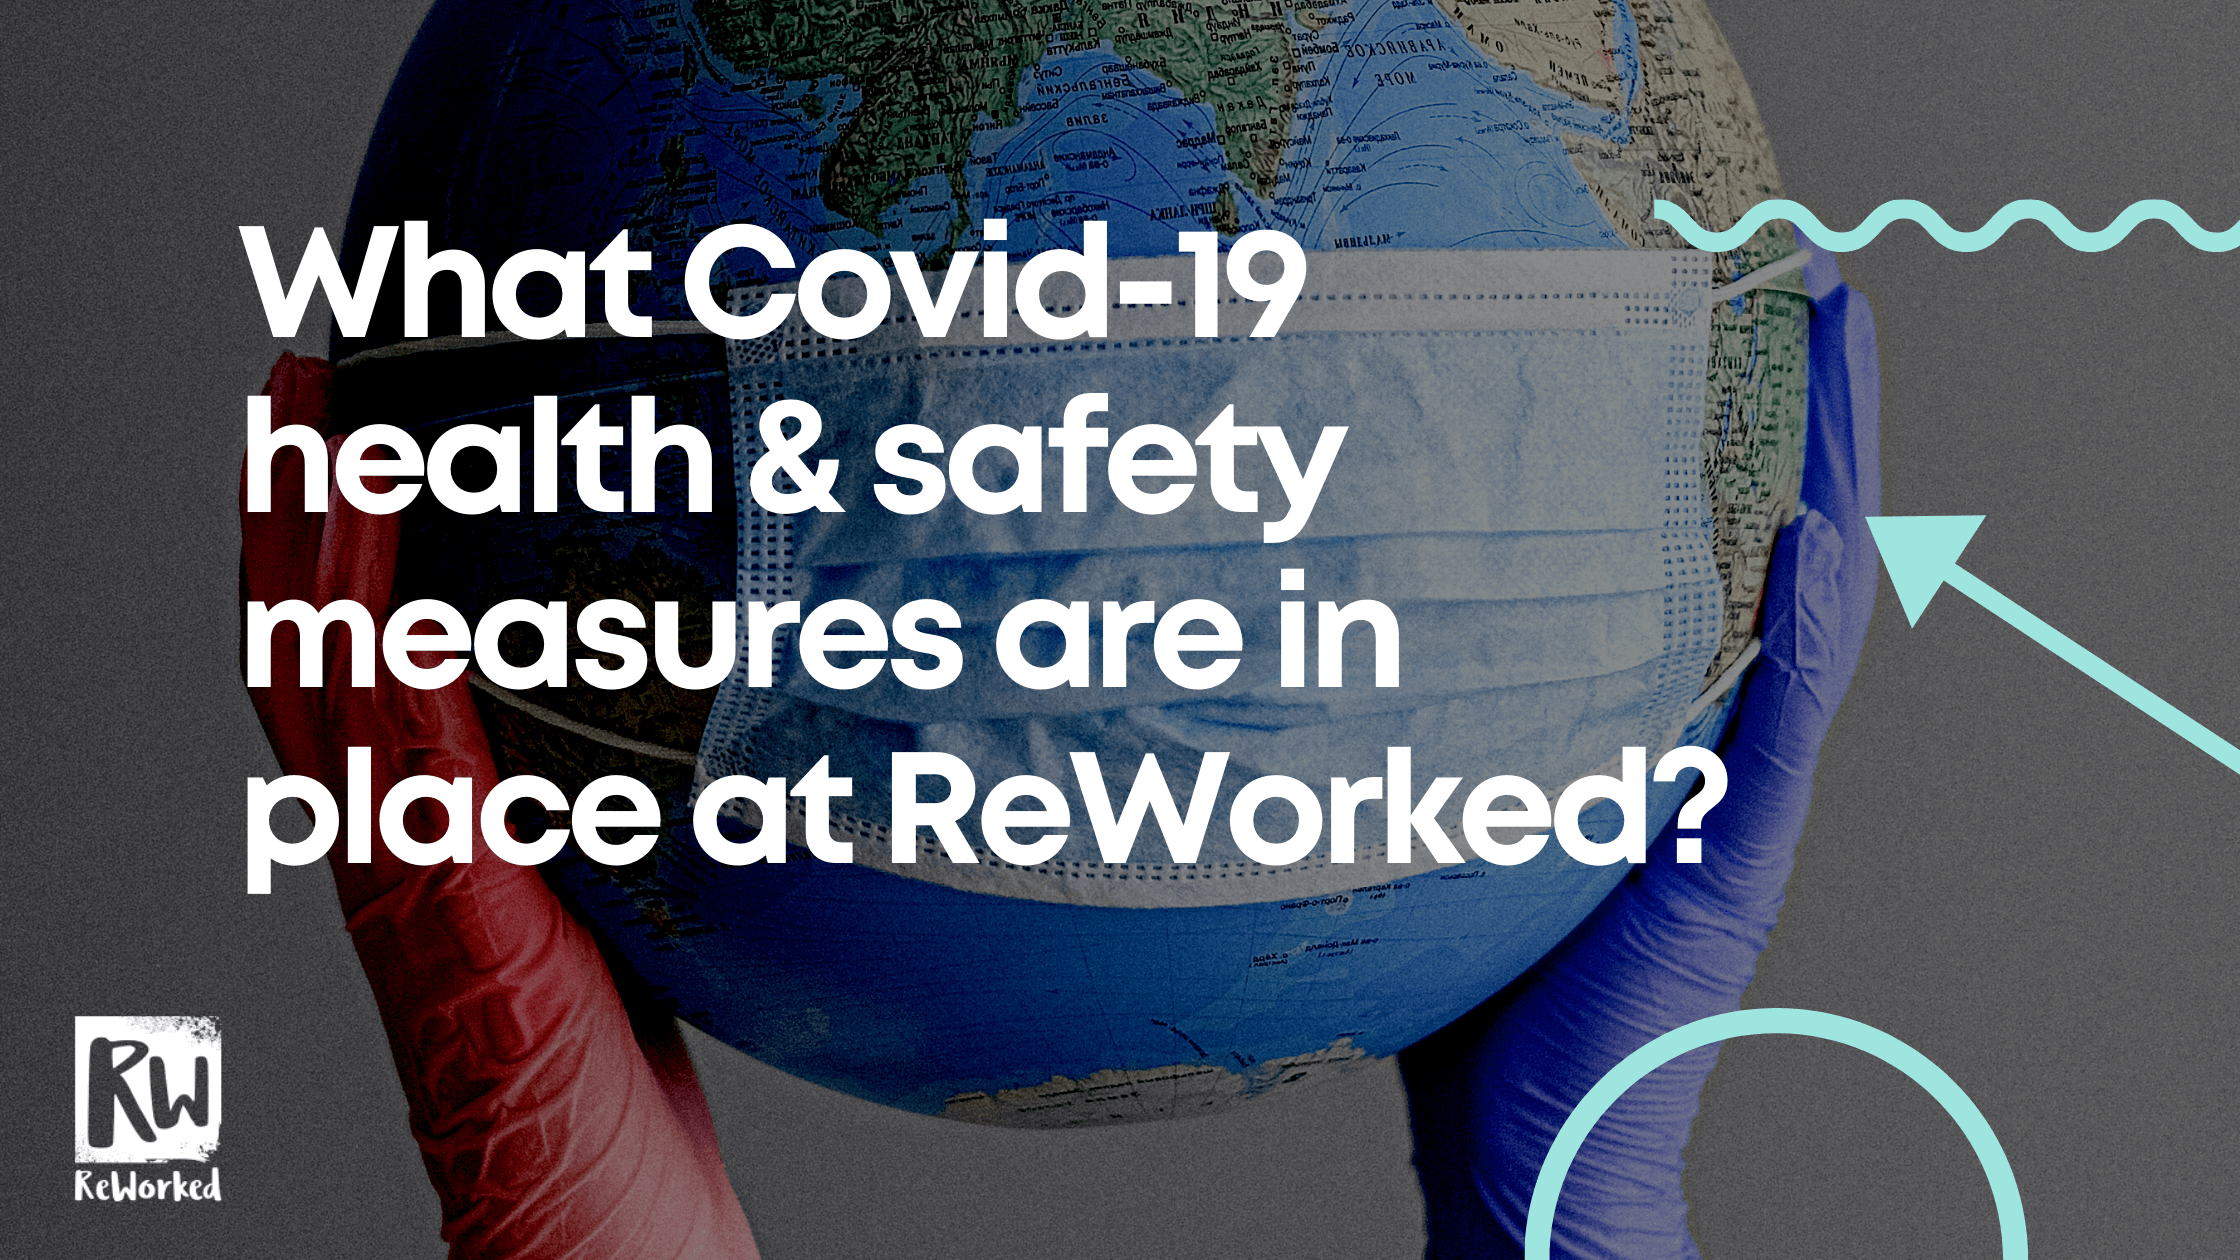 What Covid-19 health & safety measures are in place at ReWorked?